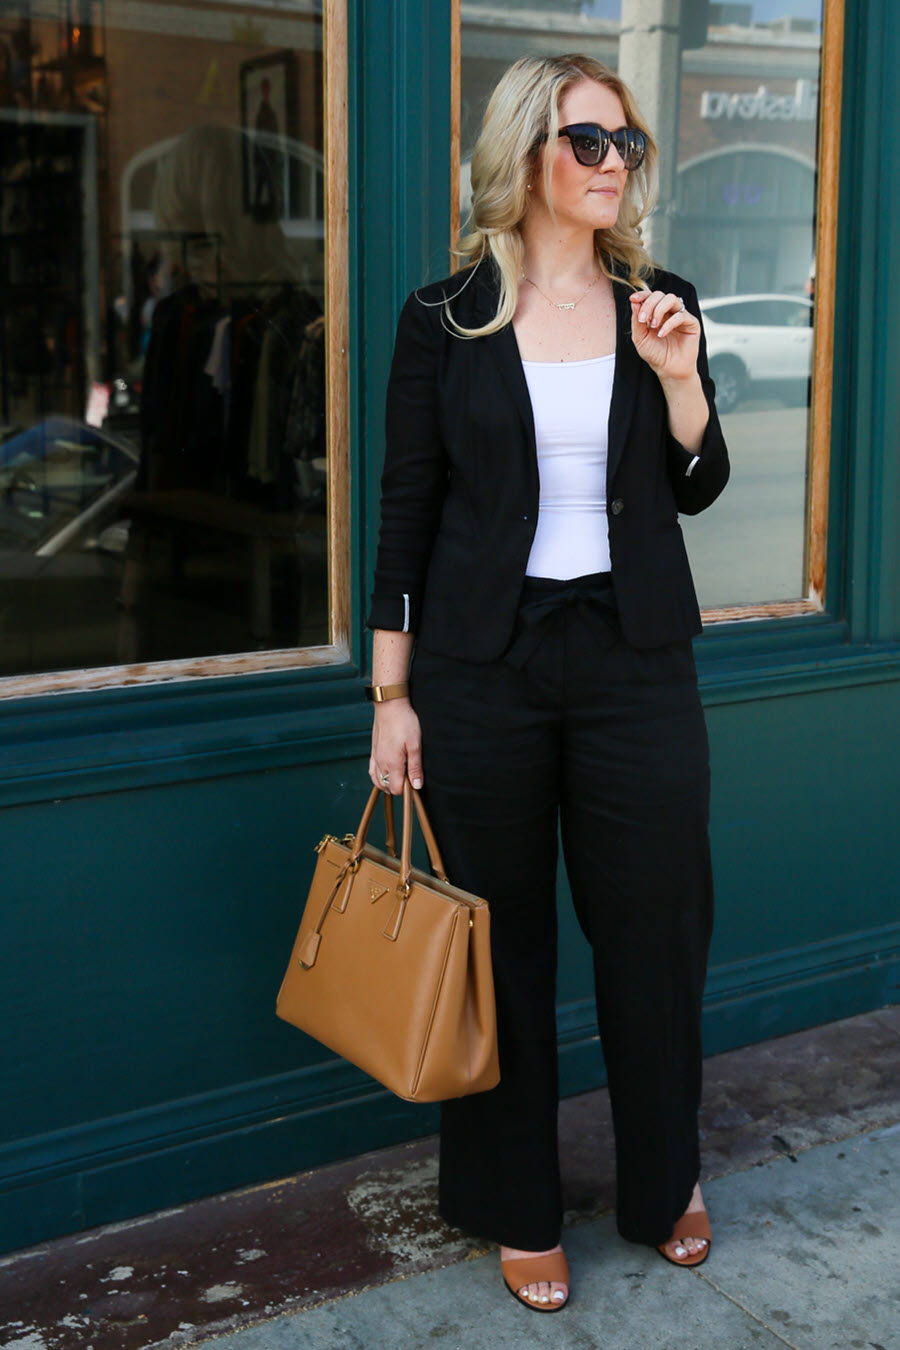 Black Blazer and Wide Leg Pants Outfit for Work. Dress up or dress down the wide leg pants trend with a tucked in shirt and heels. Paired with a matching blazer, this work outfit is great for a girls weekend too. #fashionblog #outfitideas #wideleg #widelegpants #fashiontrend #workoutfit #blazer #blackandwhite #prada